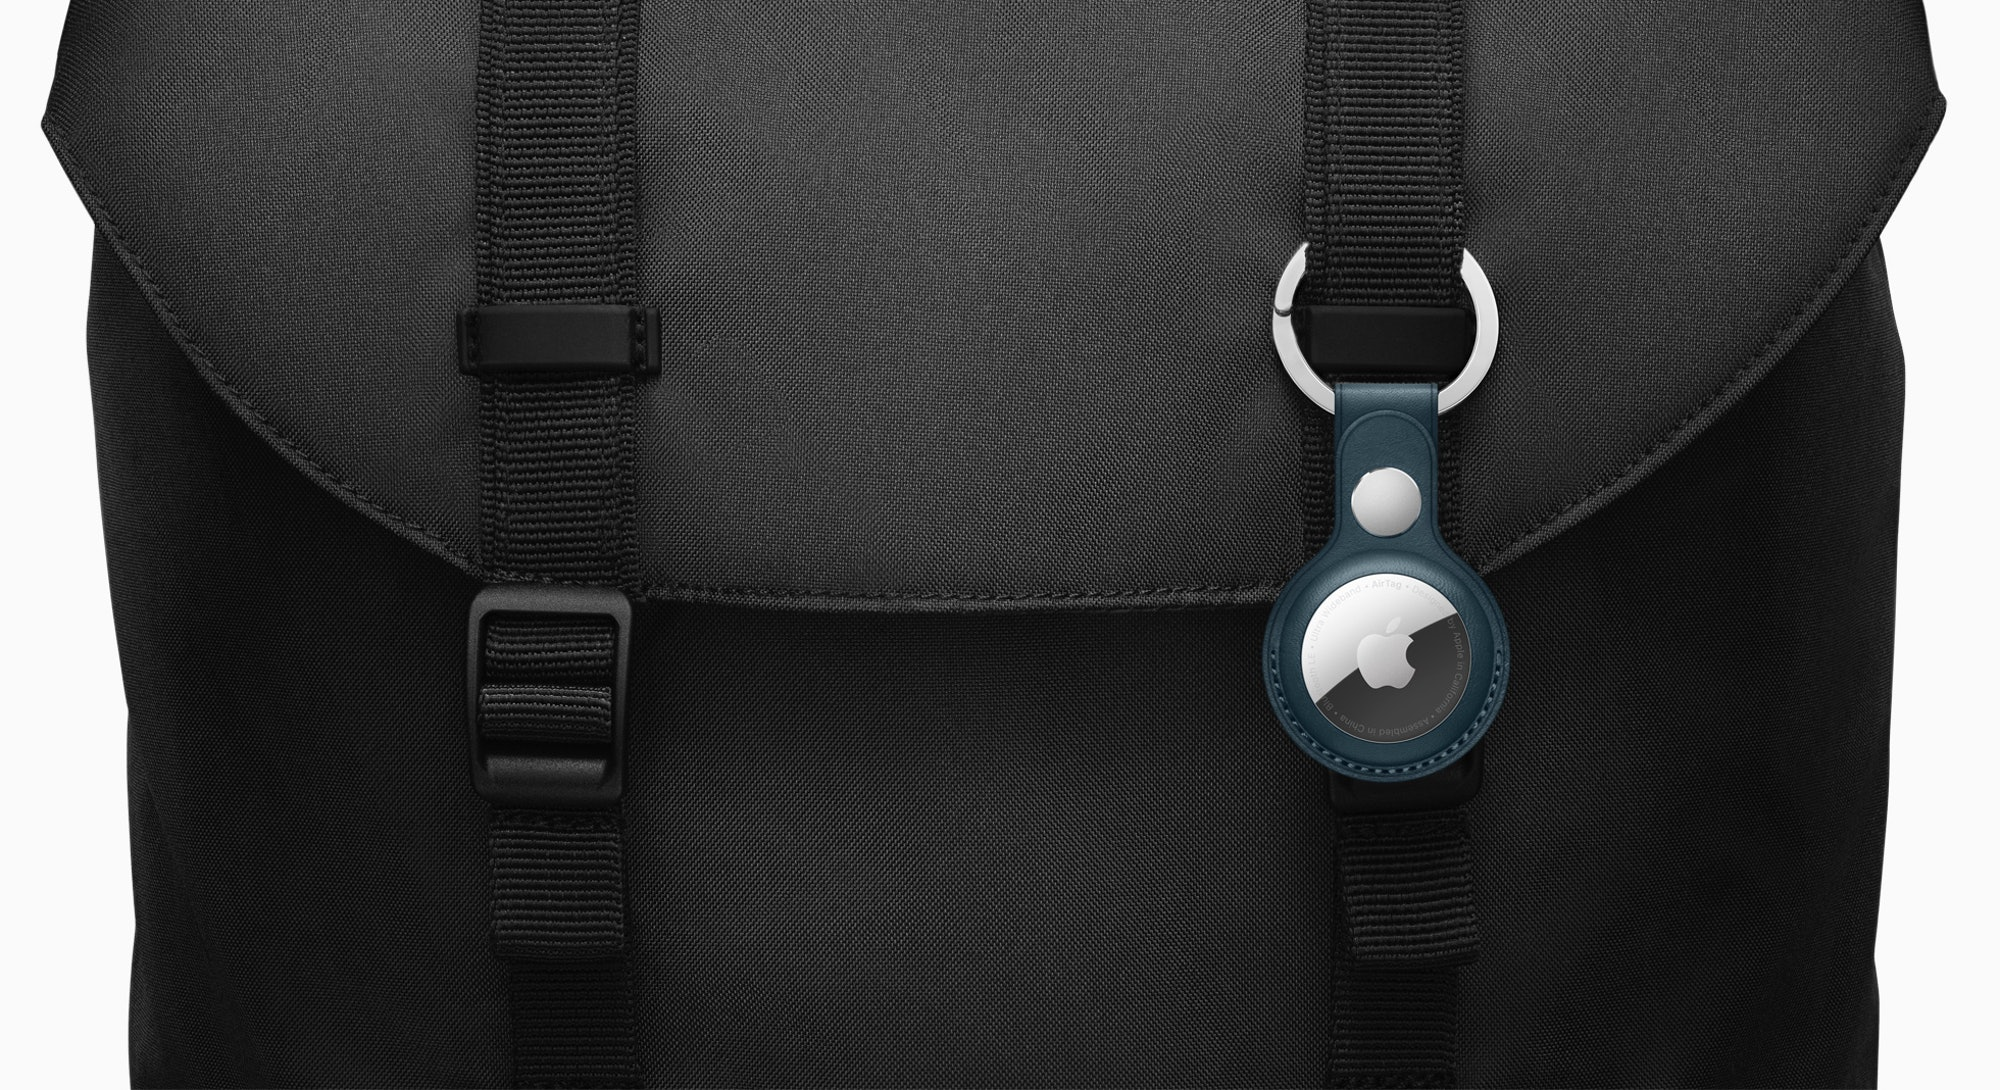 Apple AirTags clipped onto bag.